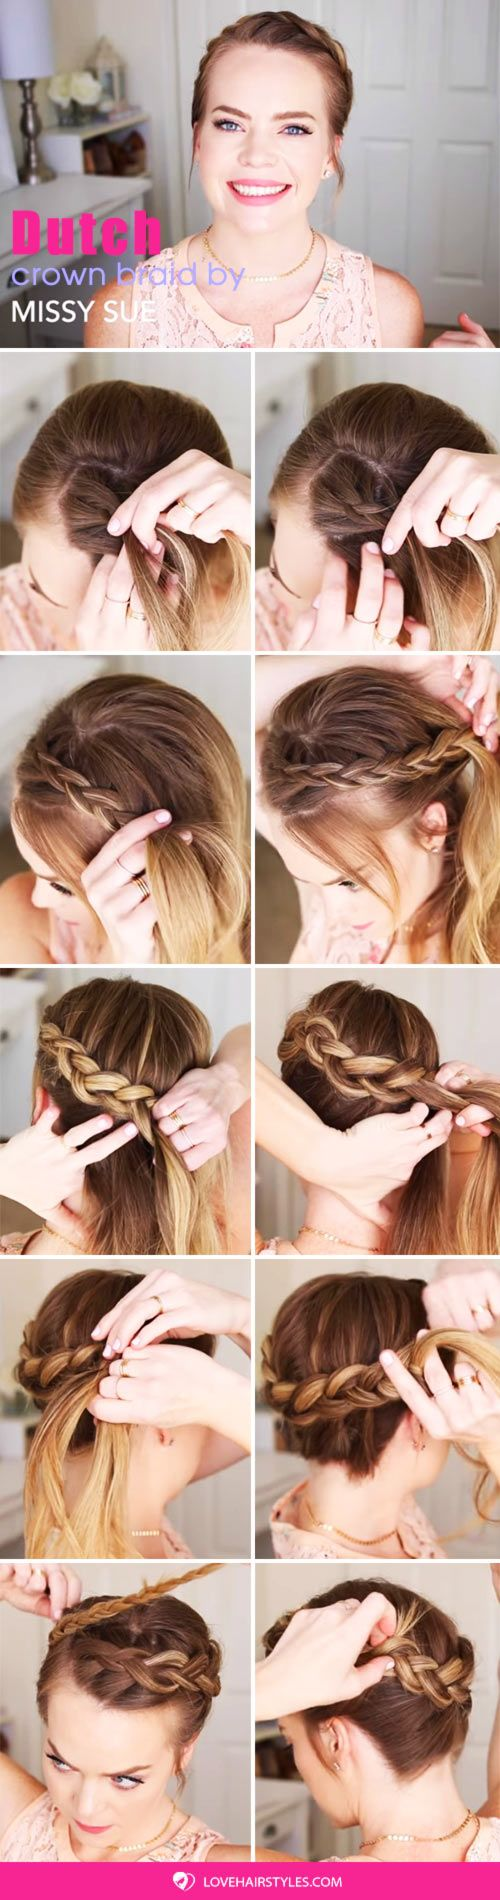 Dutch Crown Braid #braids #hairtutorials